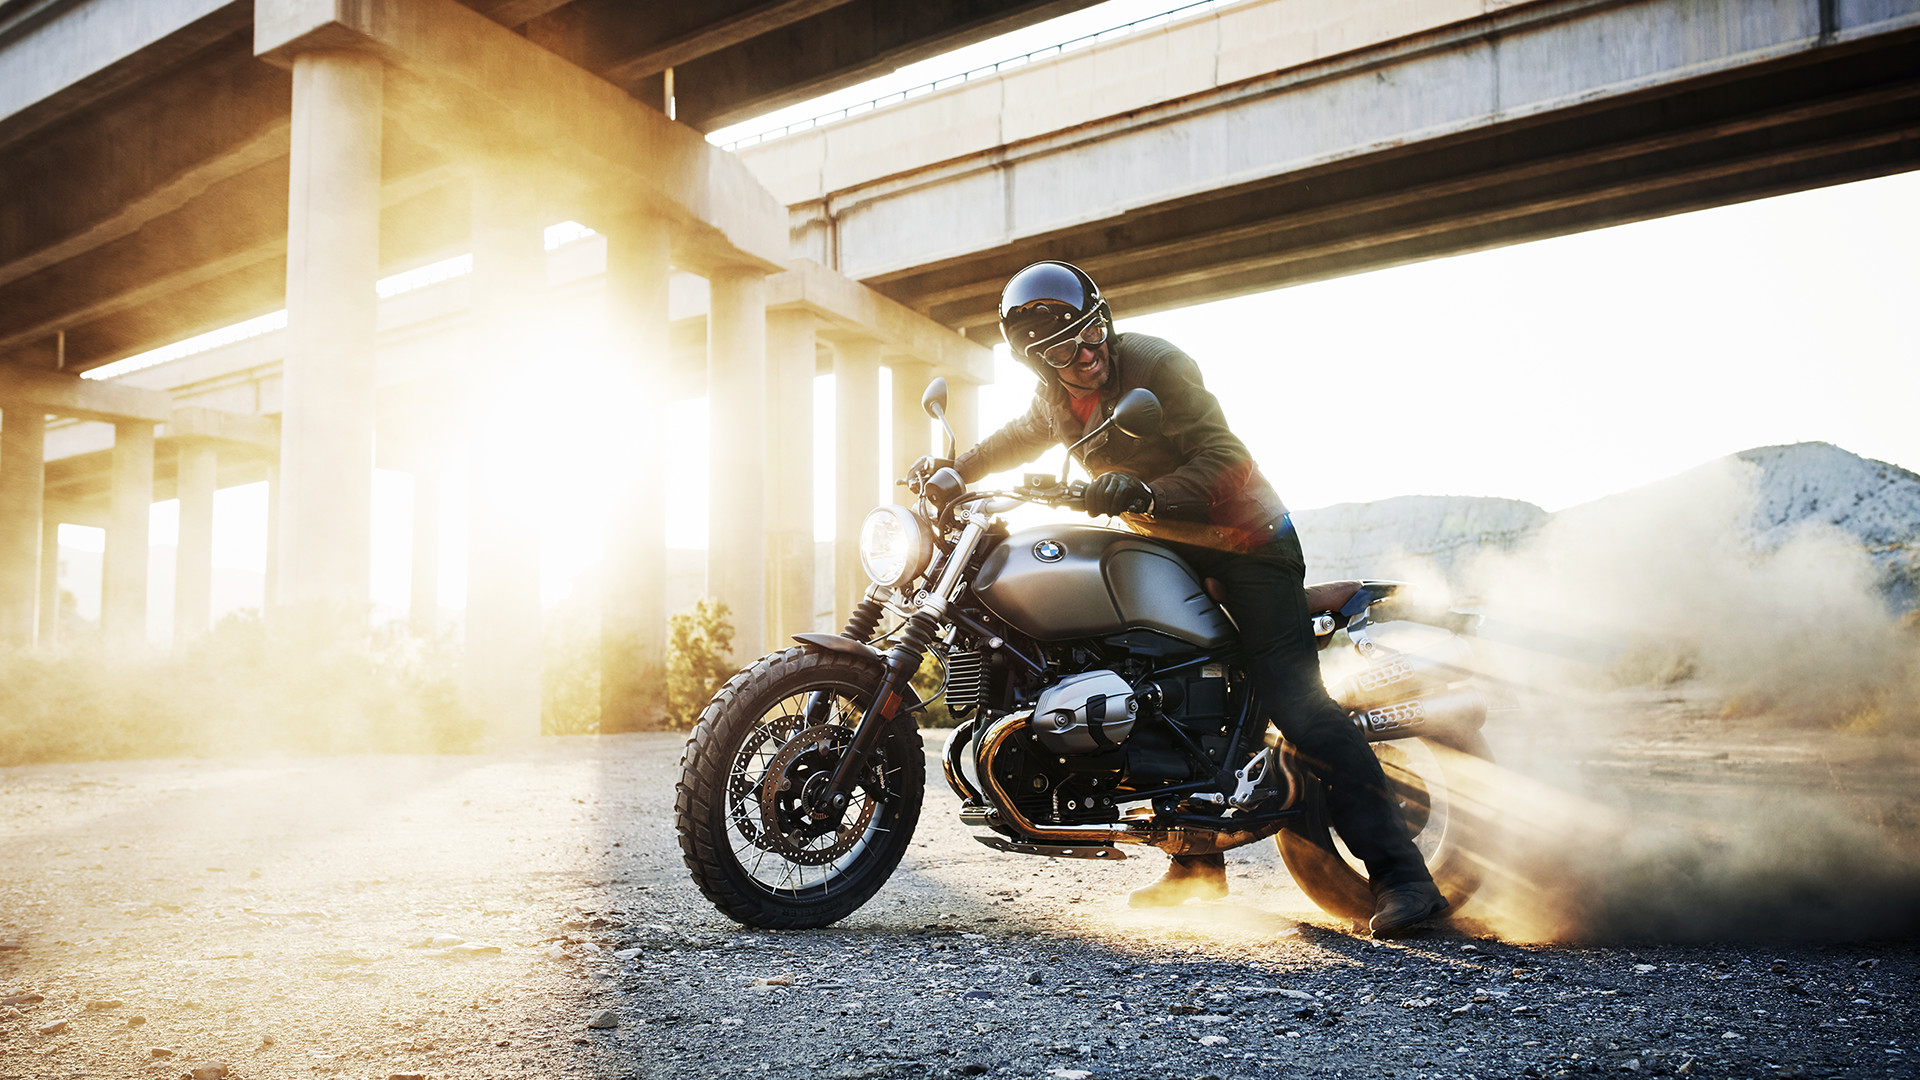 bmw r ninet scrambler slated for september, price revealed